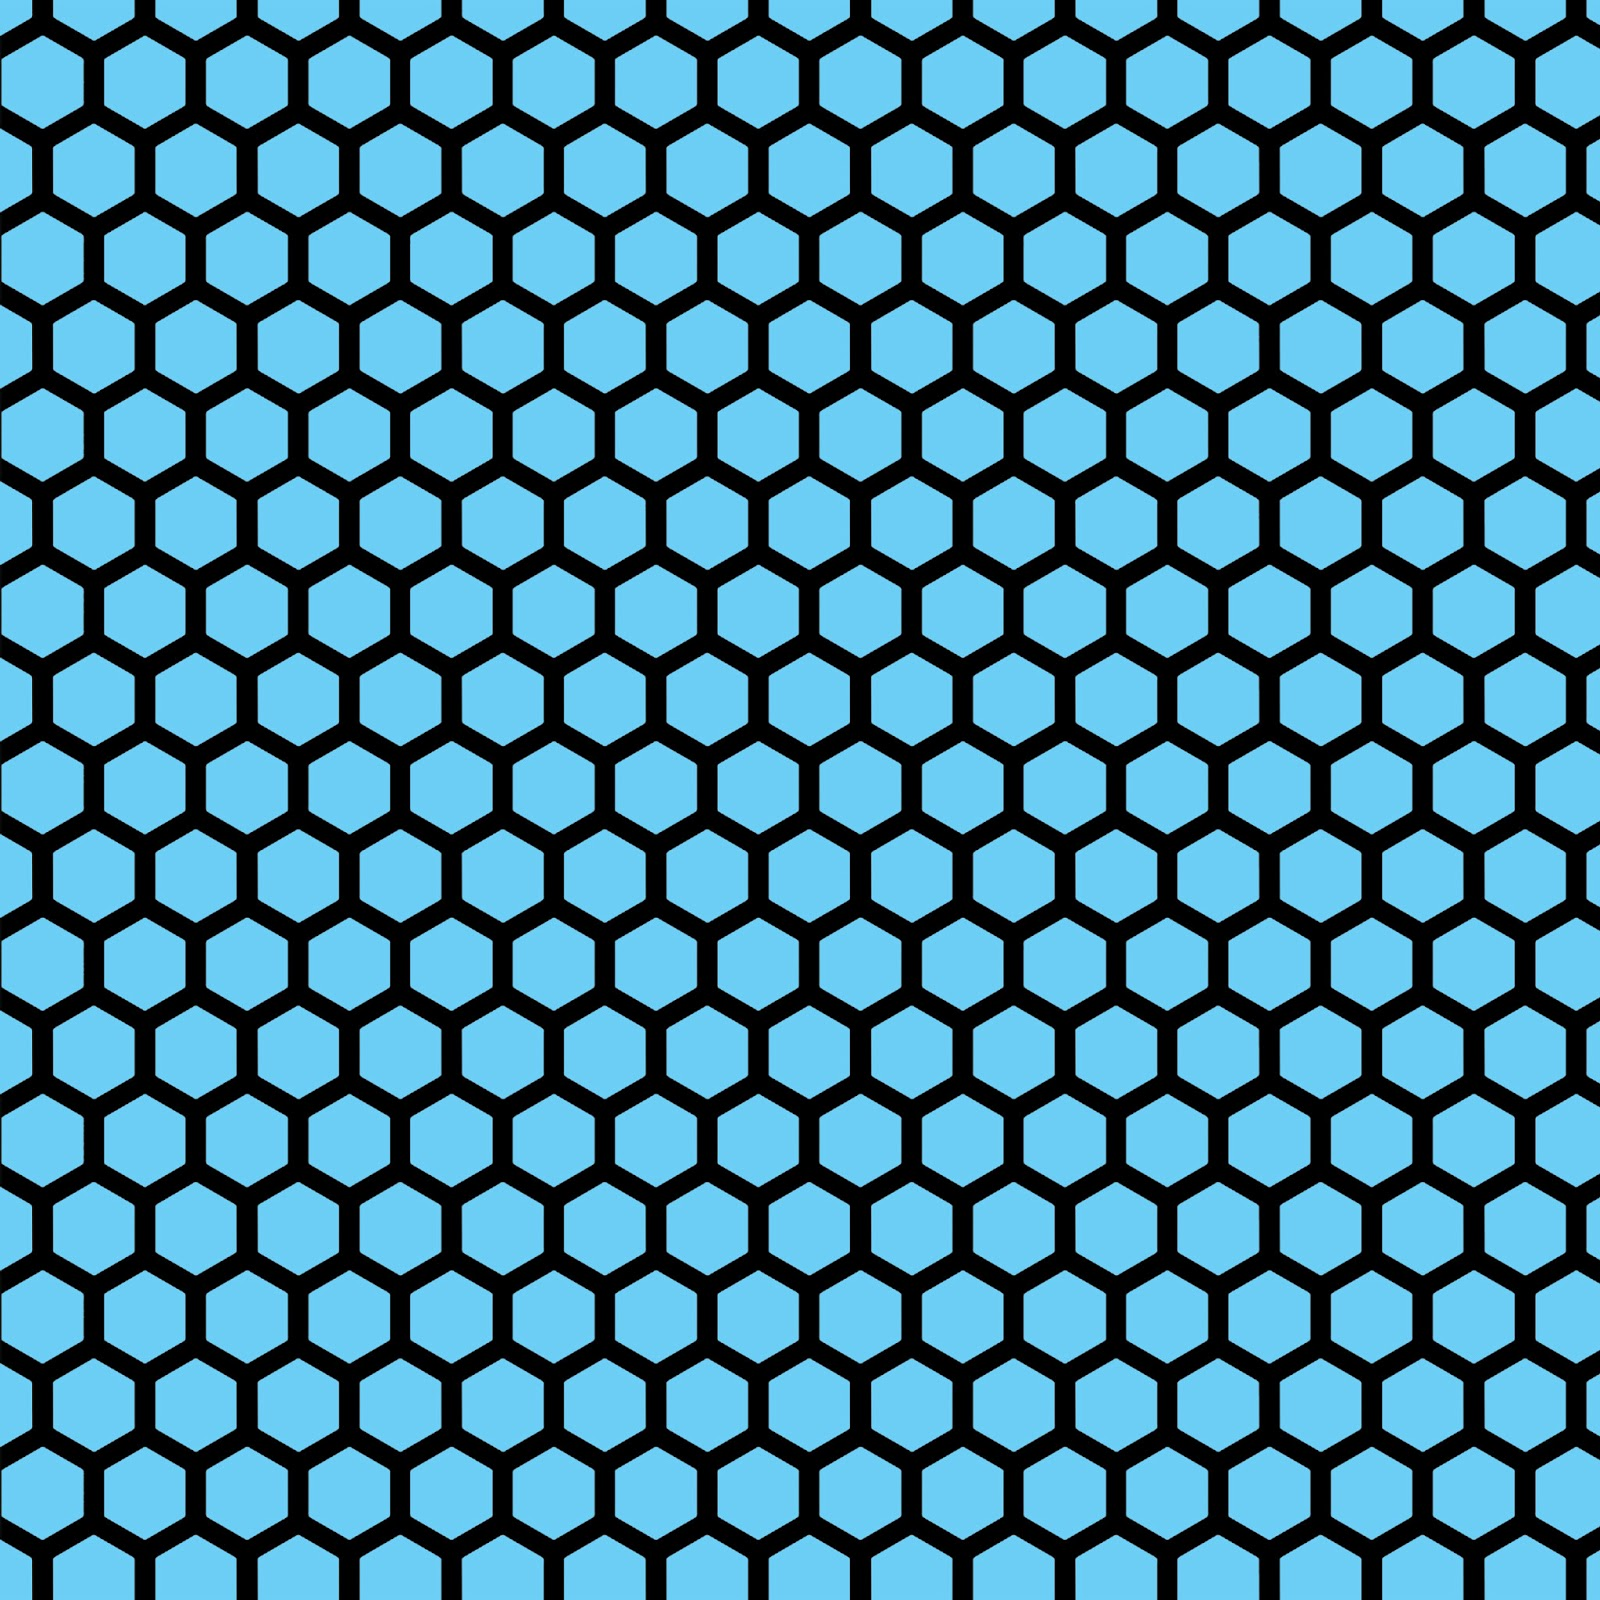 15 Colorful Hues Hexagon Honeycomb Background Printables